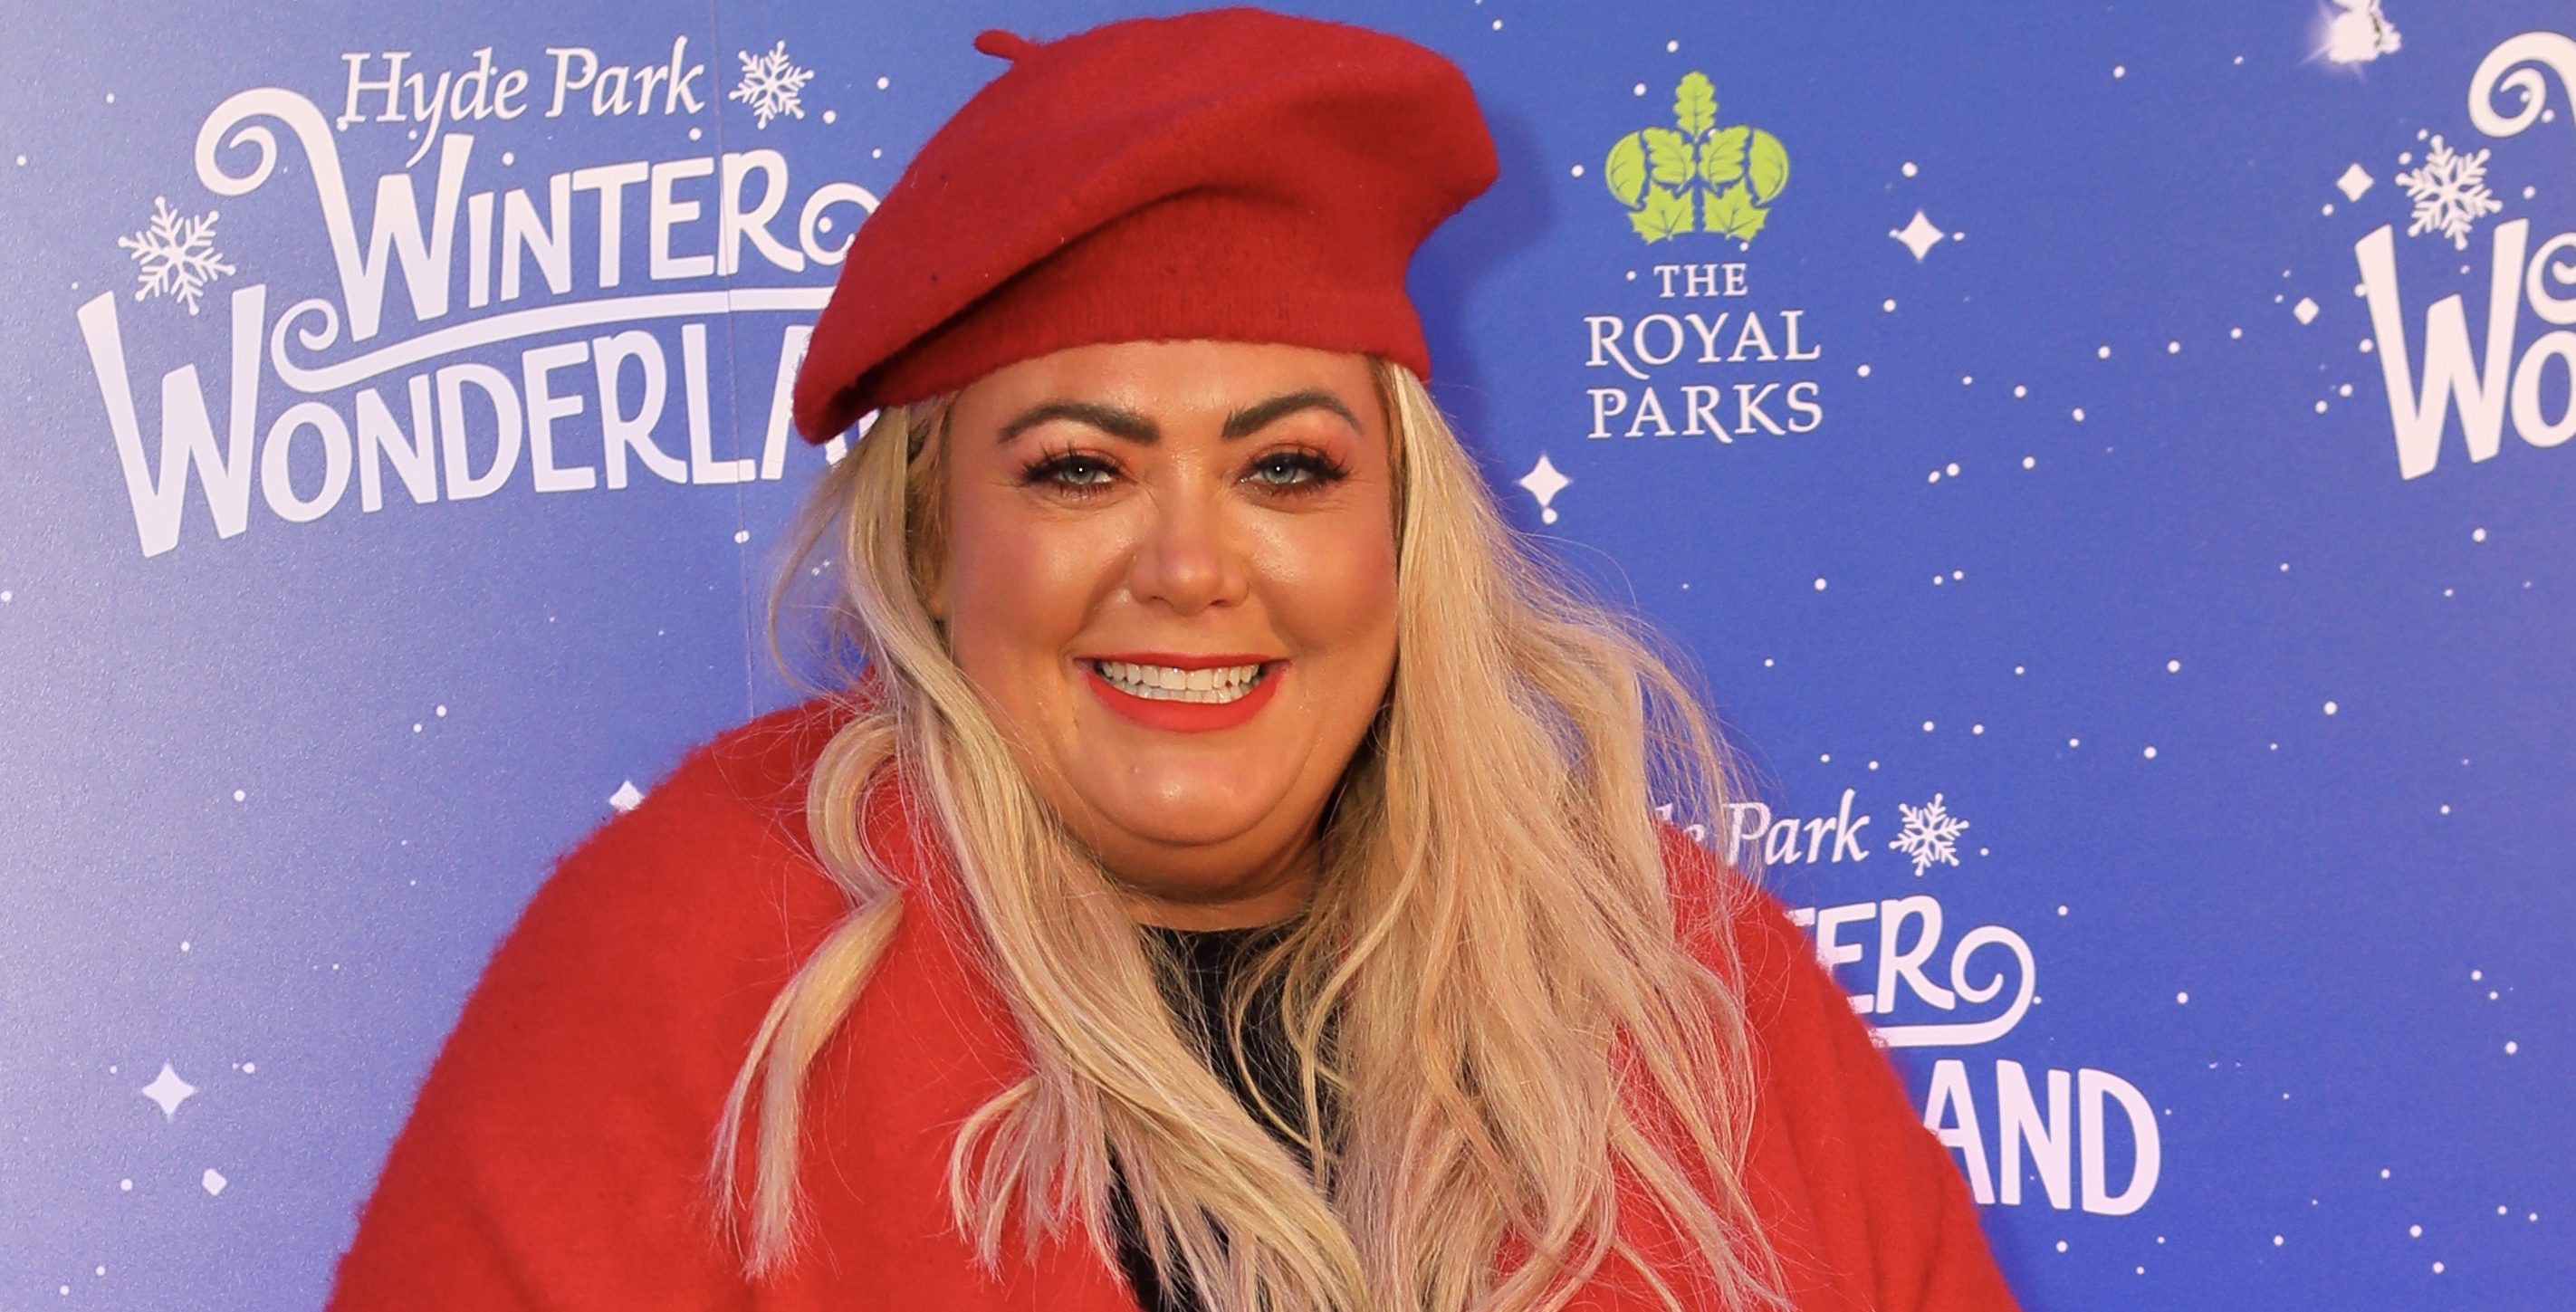 Gemma Collins turns vegetarian as part of a 'massive health kick'